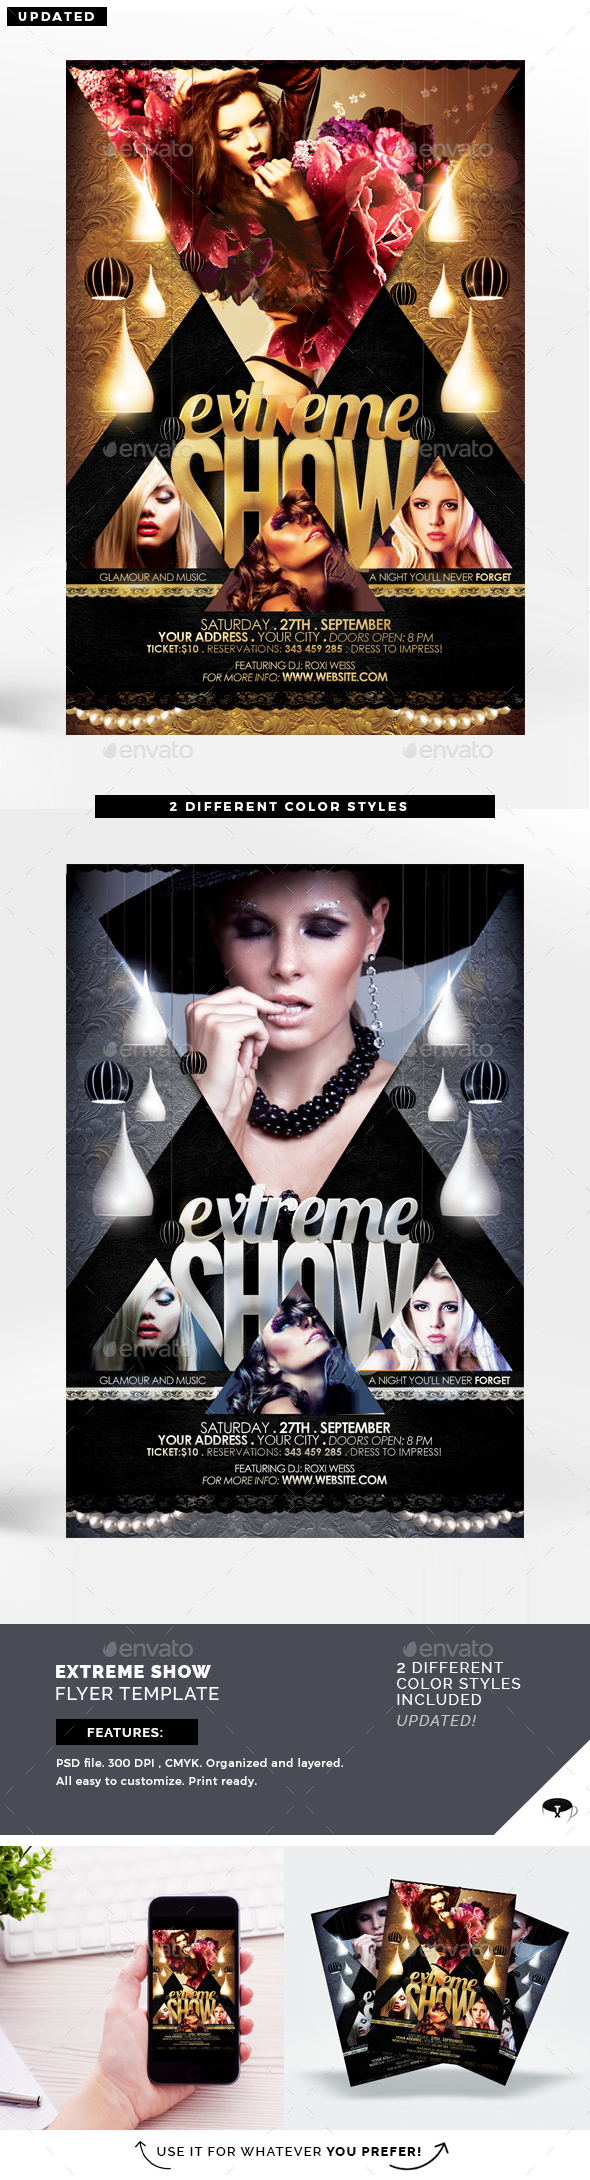 Extreme Show Flyer Template - Clubs & Parties Events